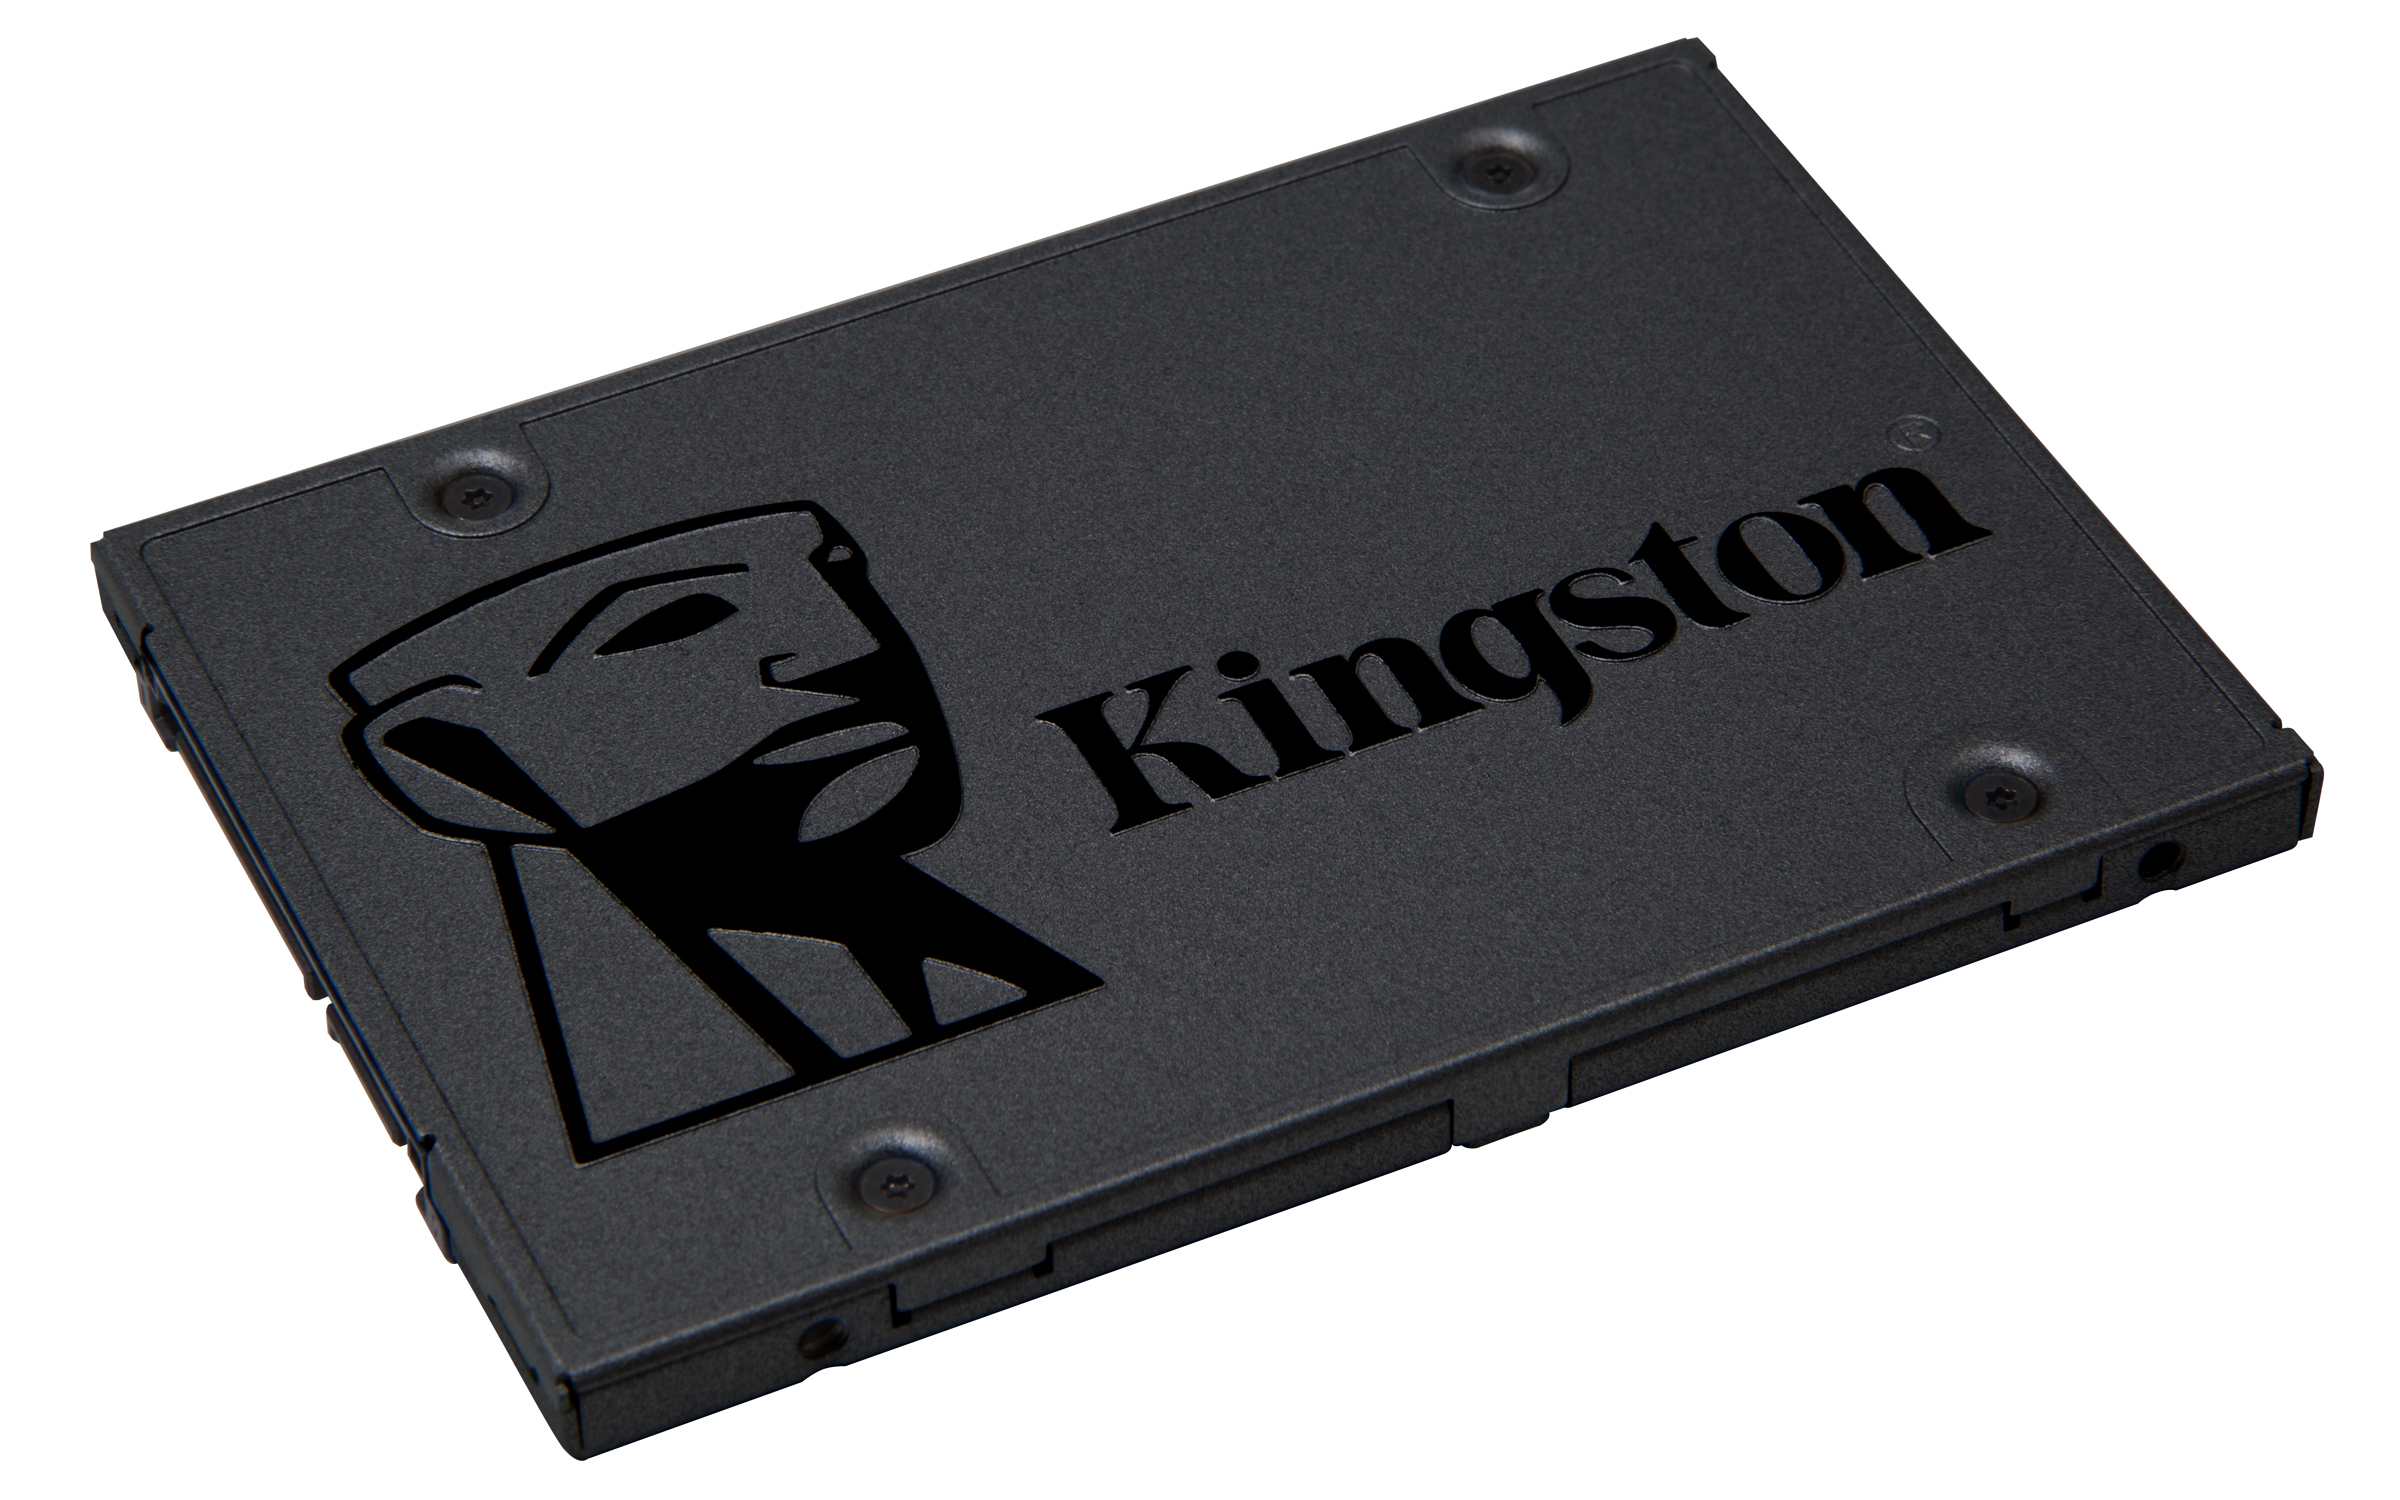 KINGSTON SSD A400 120GB 2.5